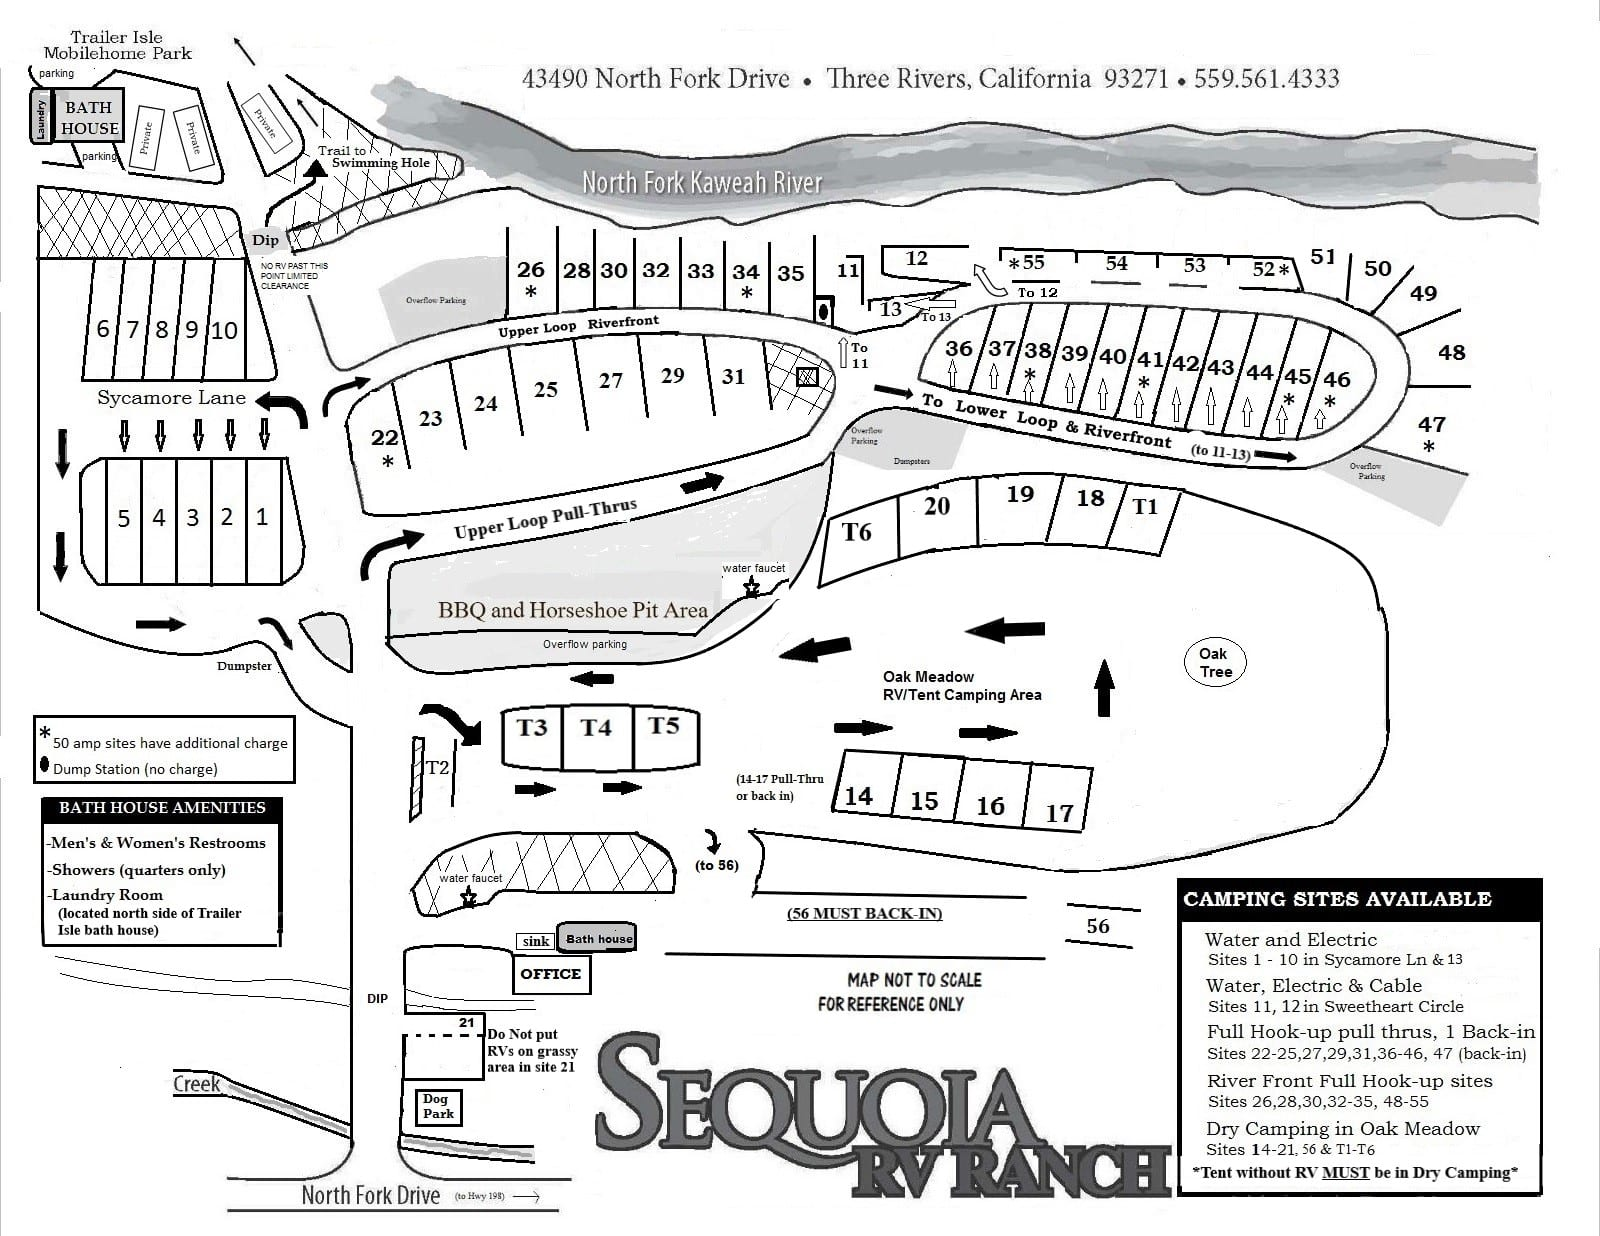 sequoia rv ranch map